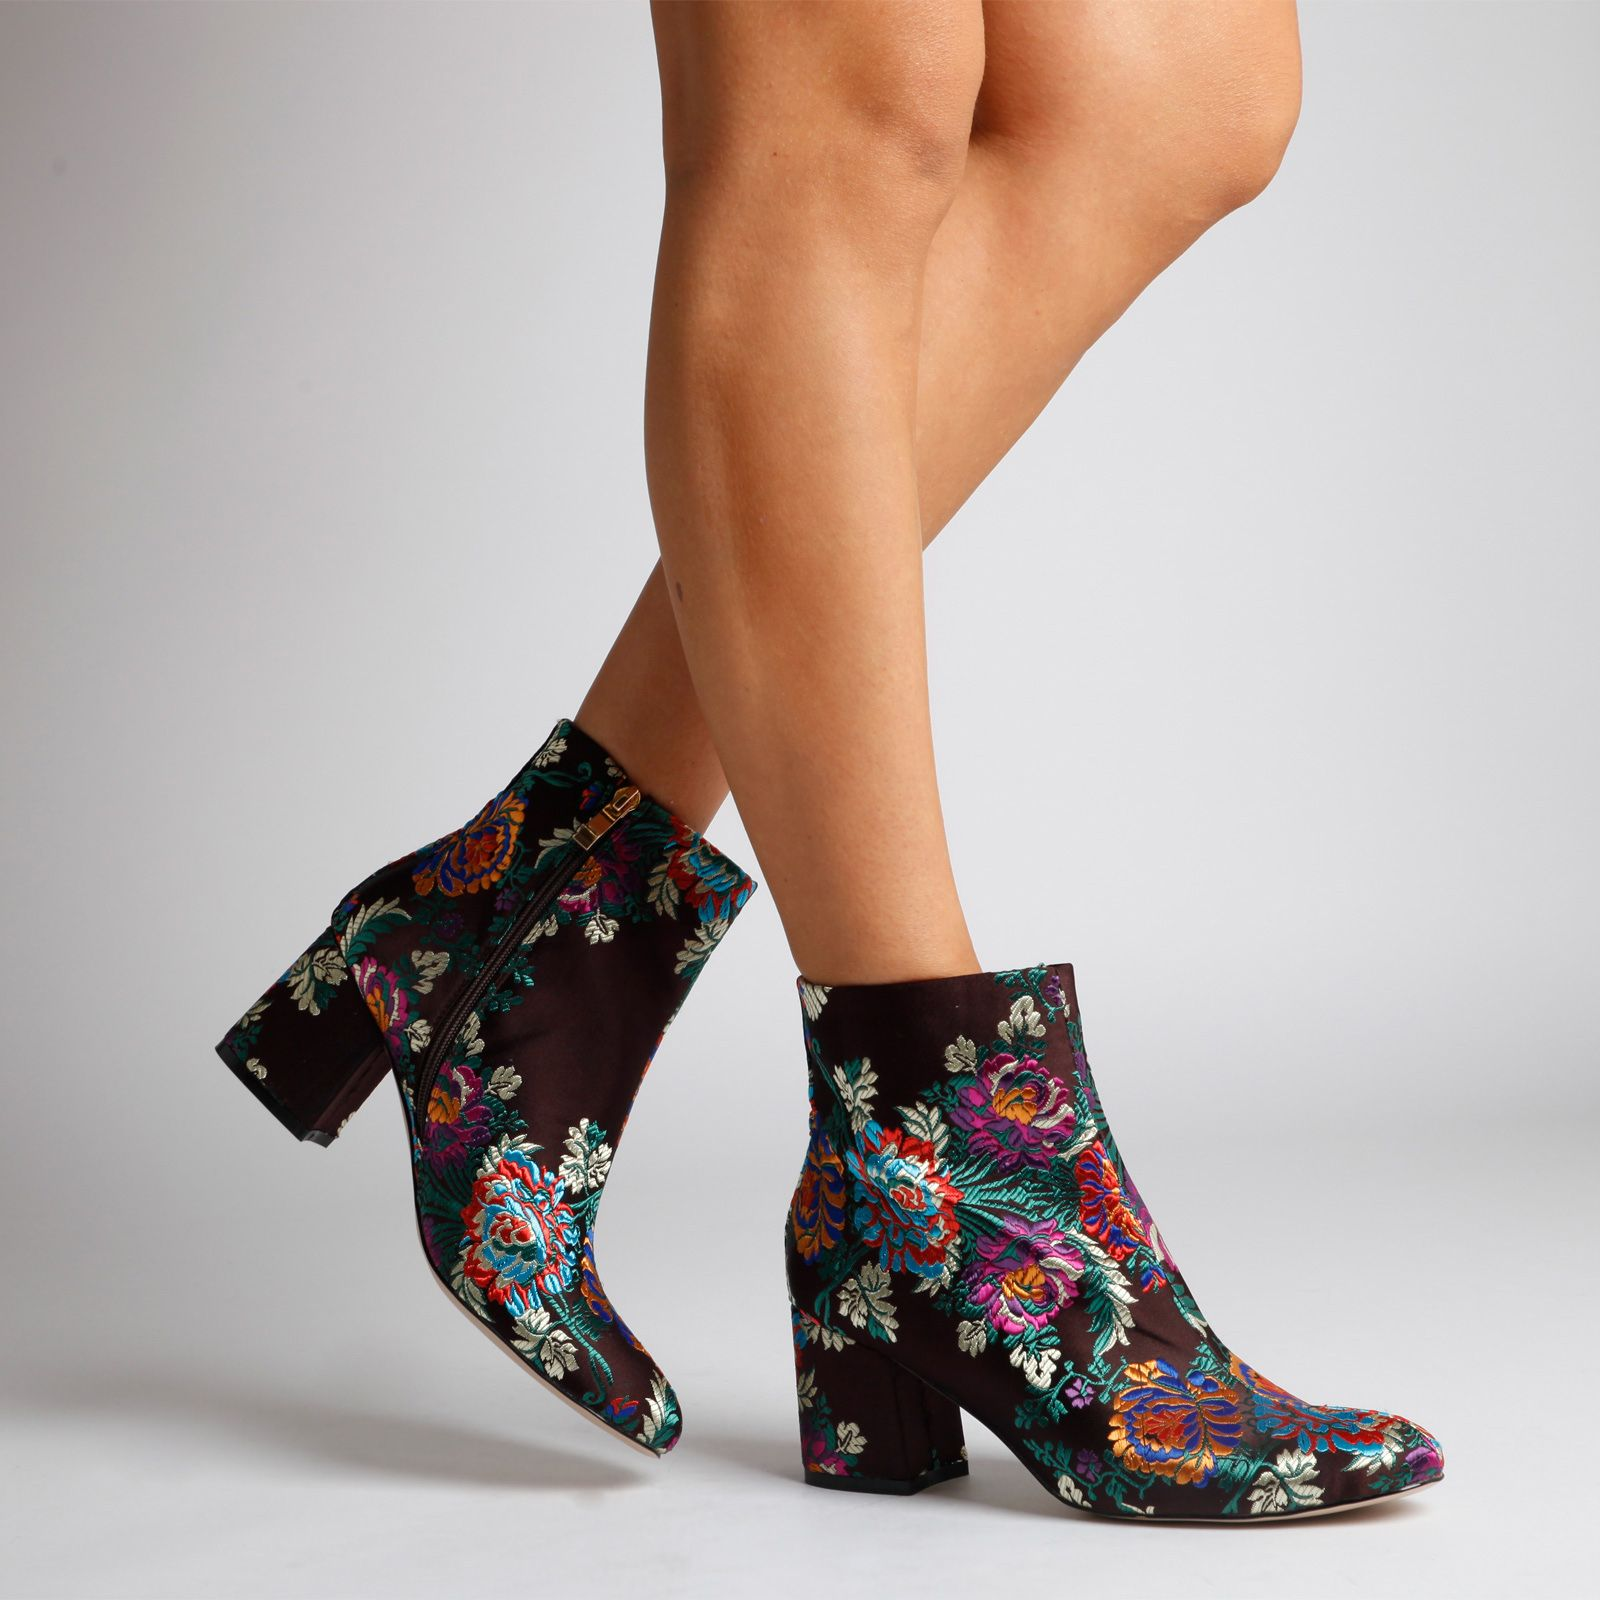 The absolute perfect style setting ankle boot to step into fall. With it's floral embroidered finish, luxurious feel and midi heel height, it's that key shoe piece. Available in sizes UK 3-14